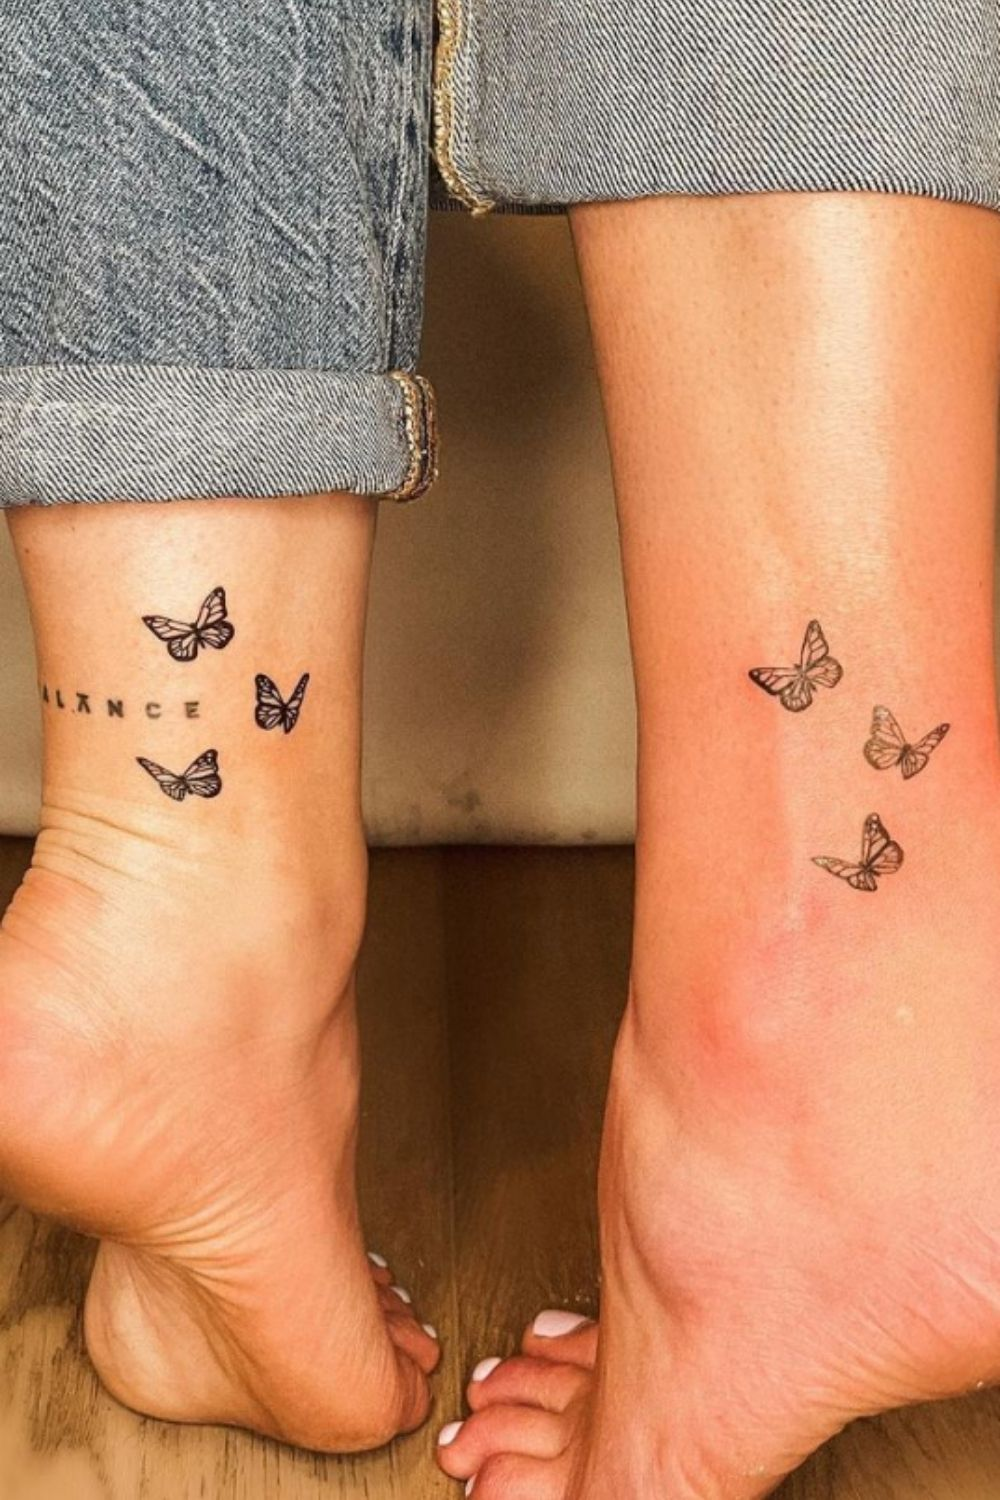 Best friend tattoo   tattoos to Celebrate your special bond